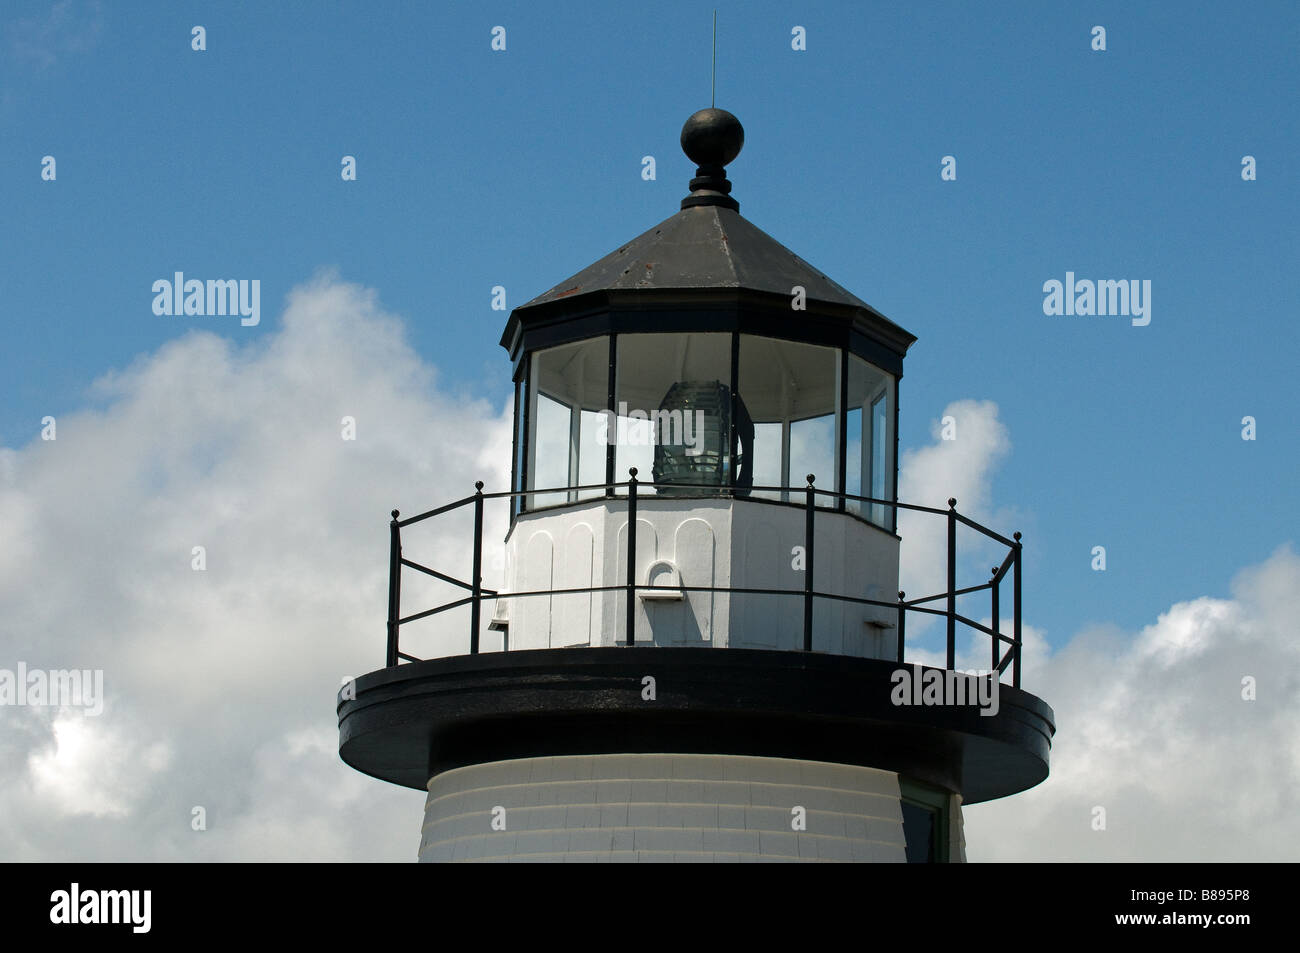 Light house against backdrop of blue skies and fluffy white clouds - Stock Image